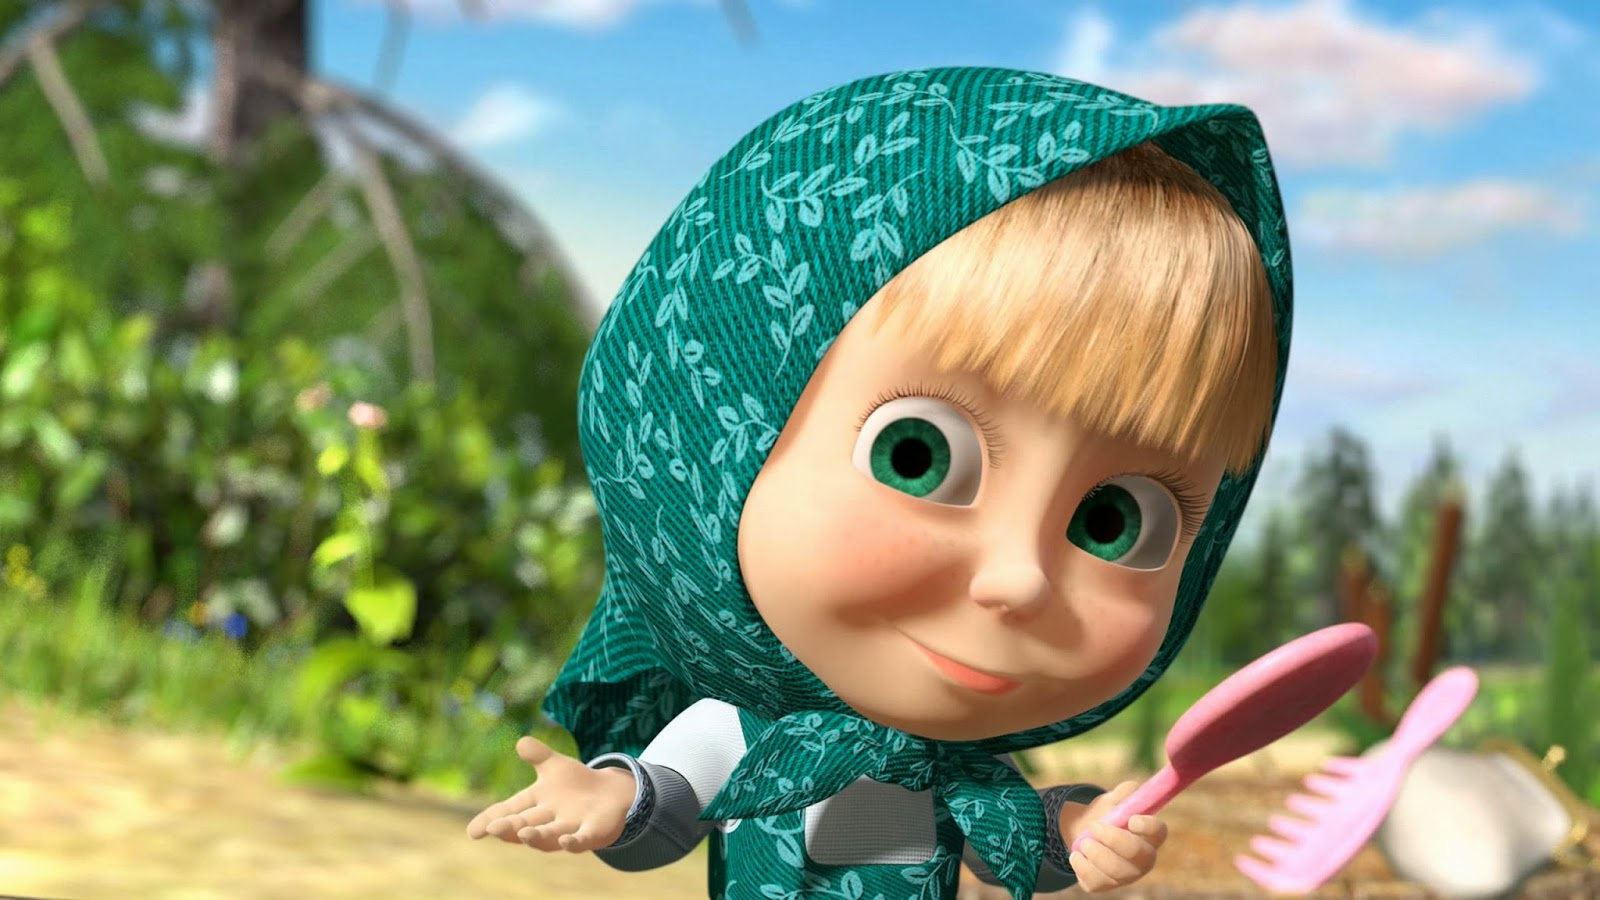 Download Wallpaper Gambar Masha And The Bear Kualitas HD Full